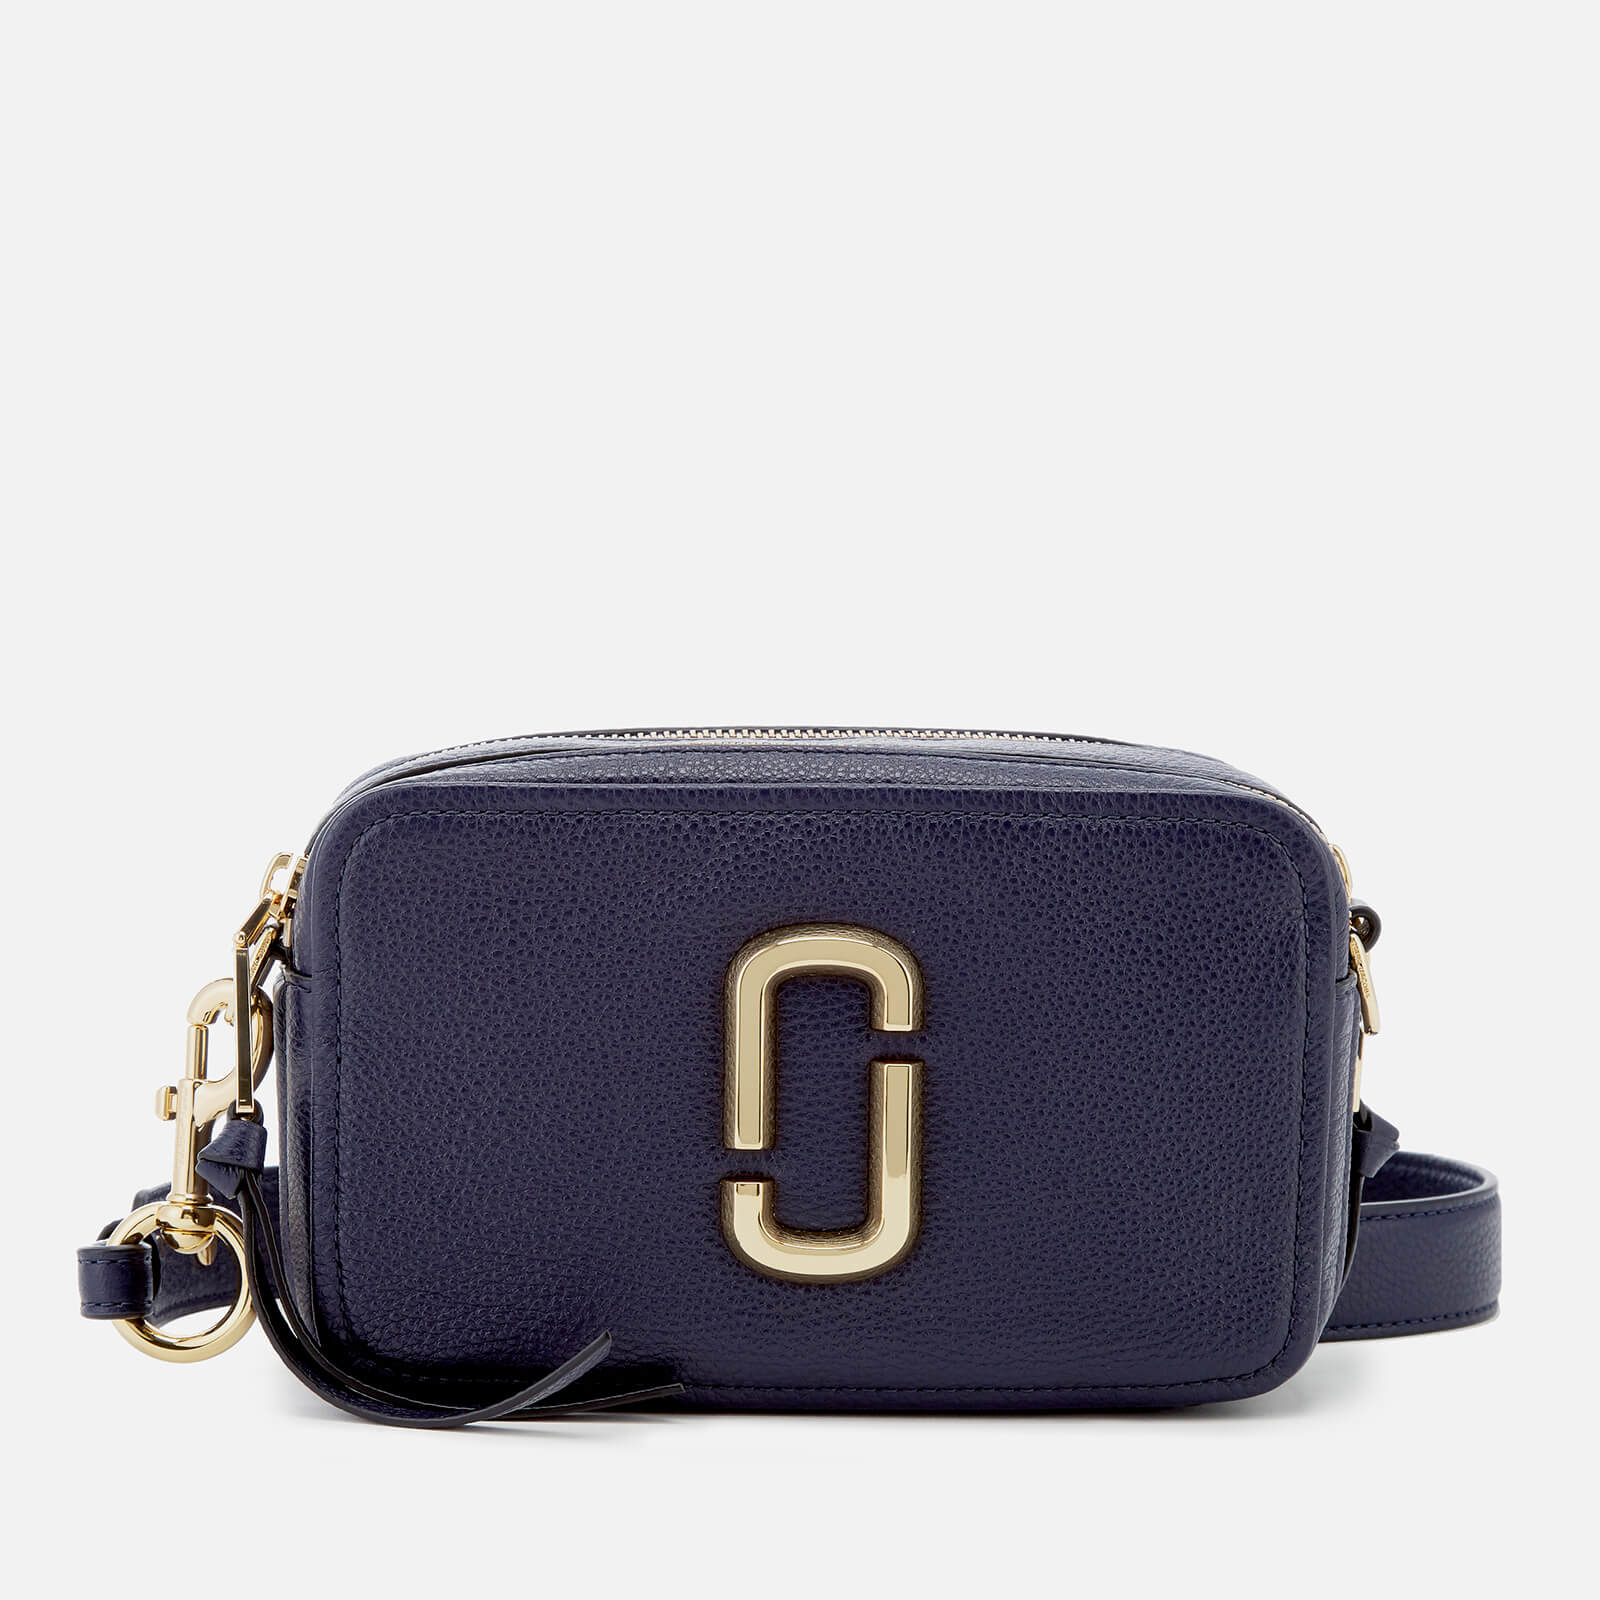 18e6dfe095a8 Marc Jacobs Women s The Softshot 21 Cross Body Bag - Navy - Free UK  Delivery over £50